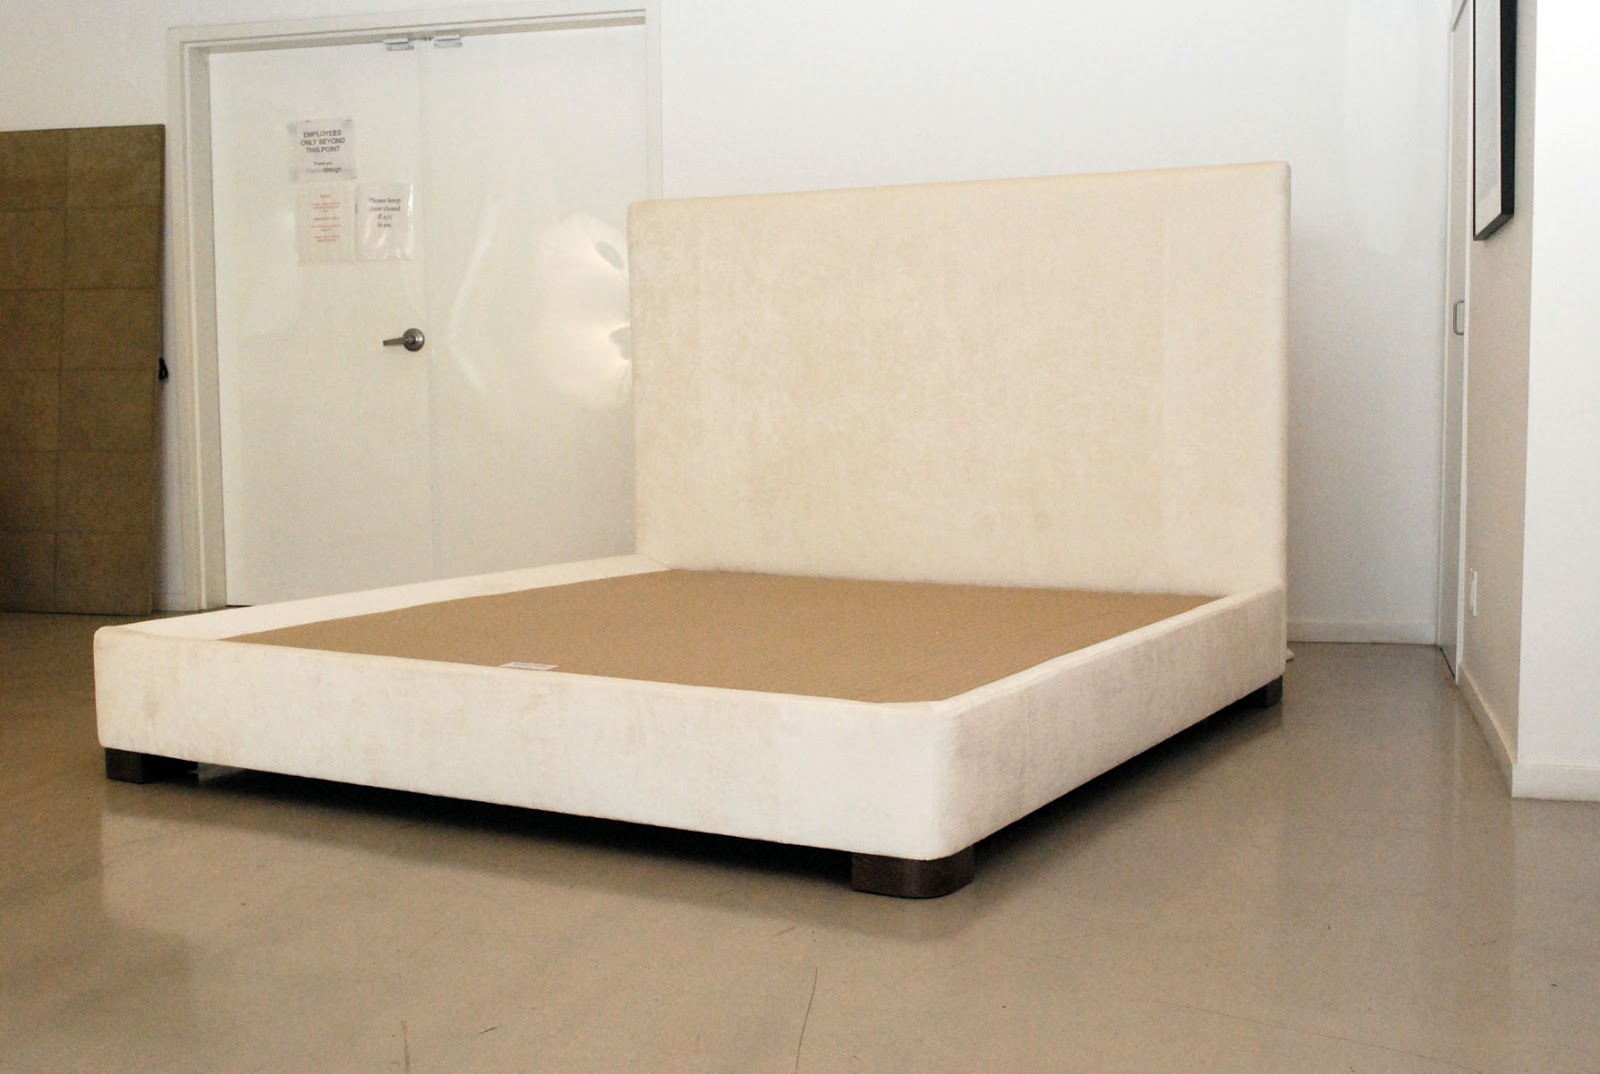 classic design upholstered headboard bed base